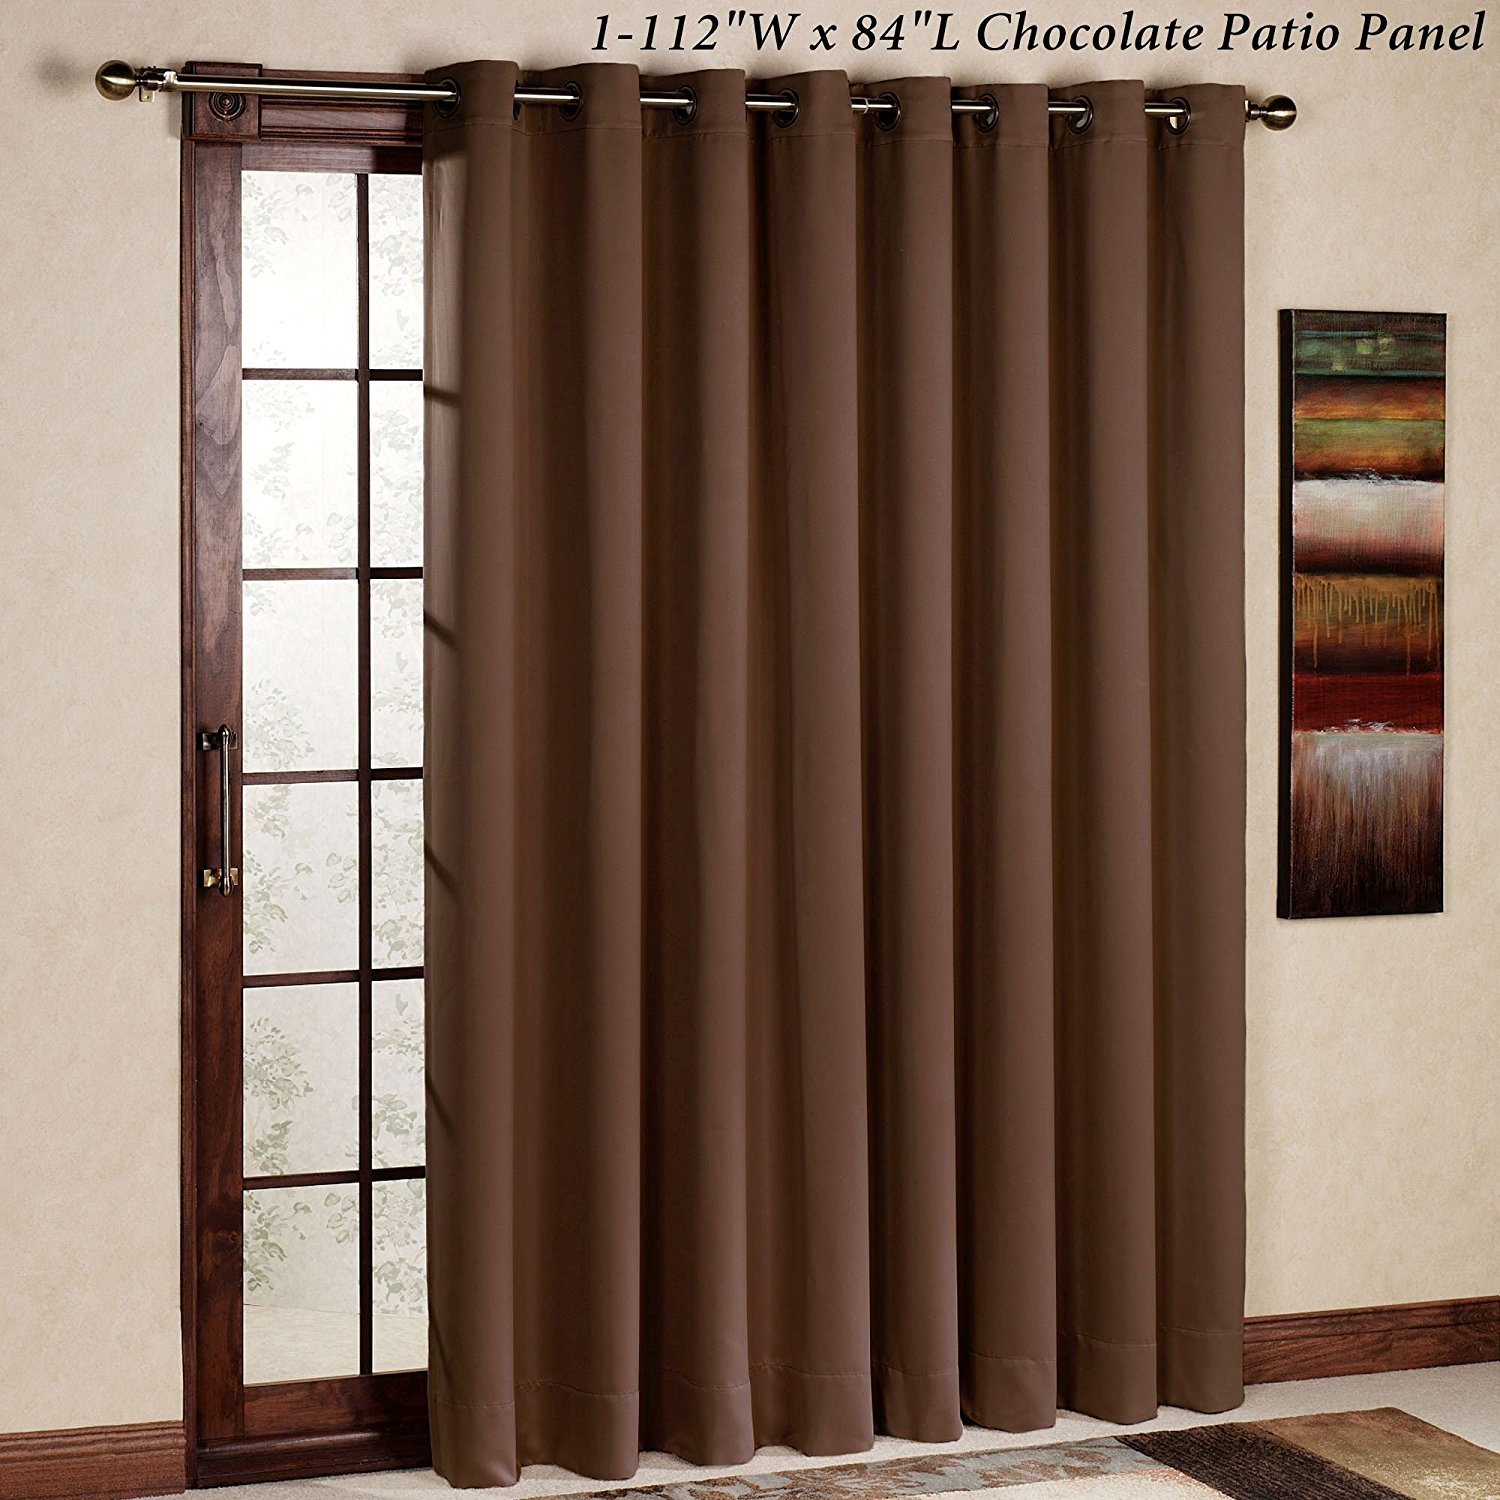 Cheap Room Darkening Curtains | Blackout Curtins | Cheap Blackout Curtains